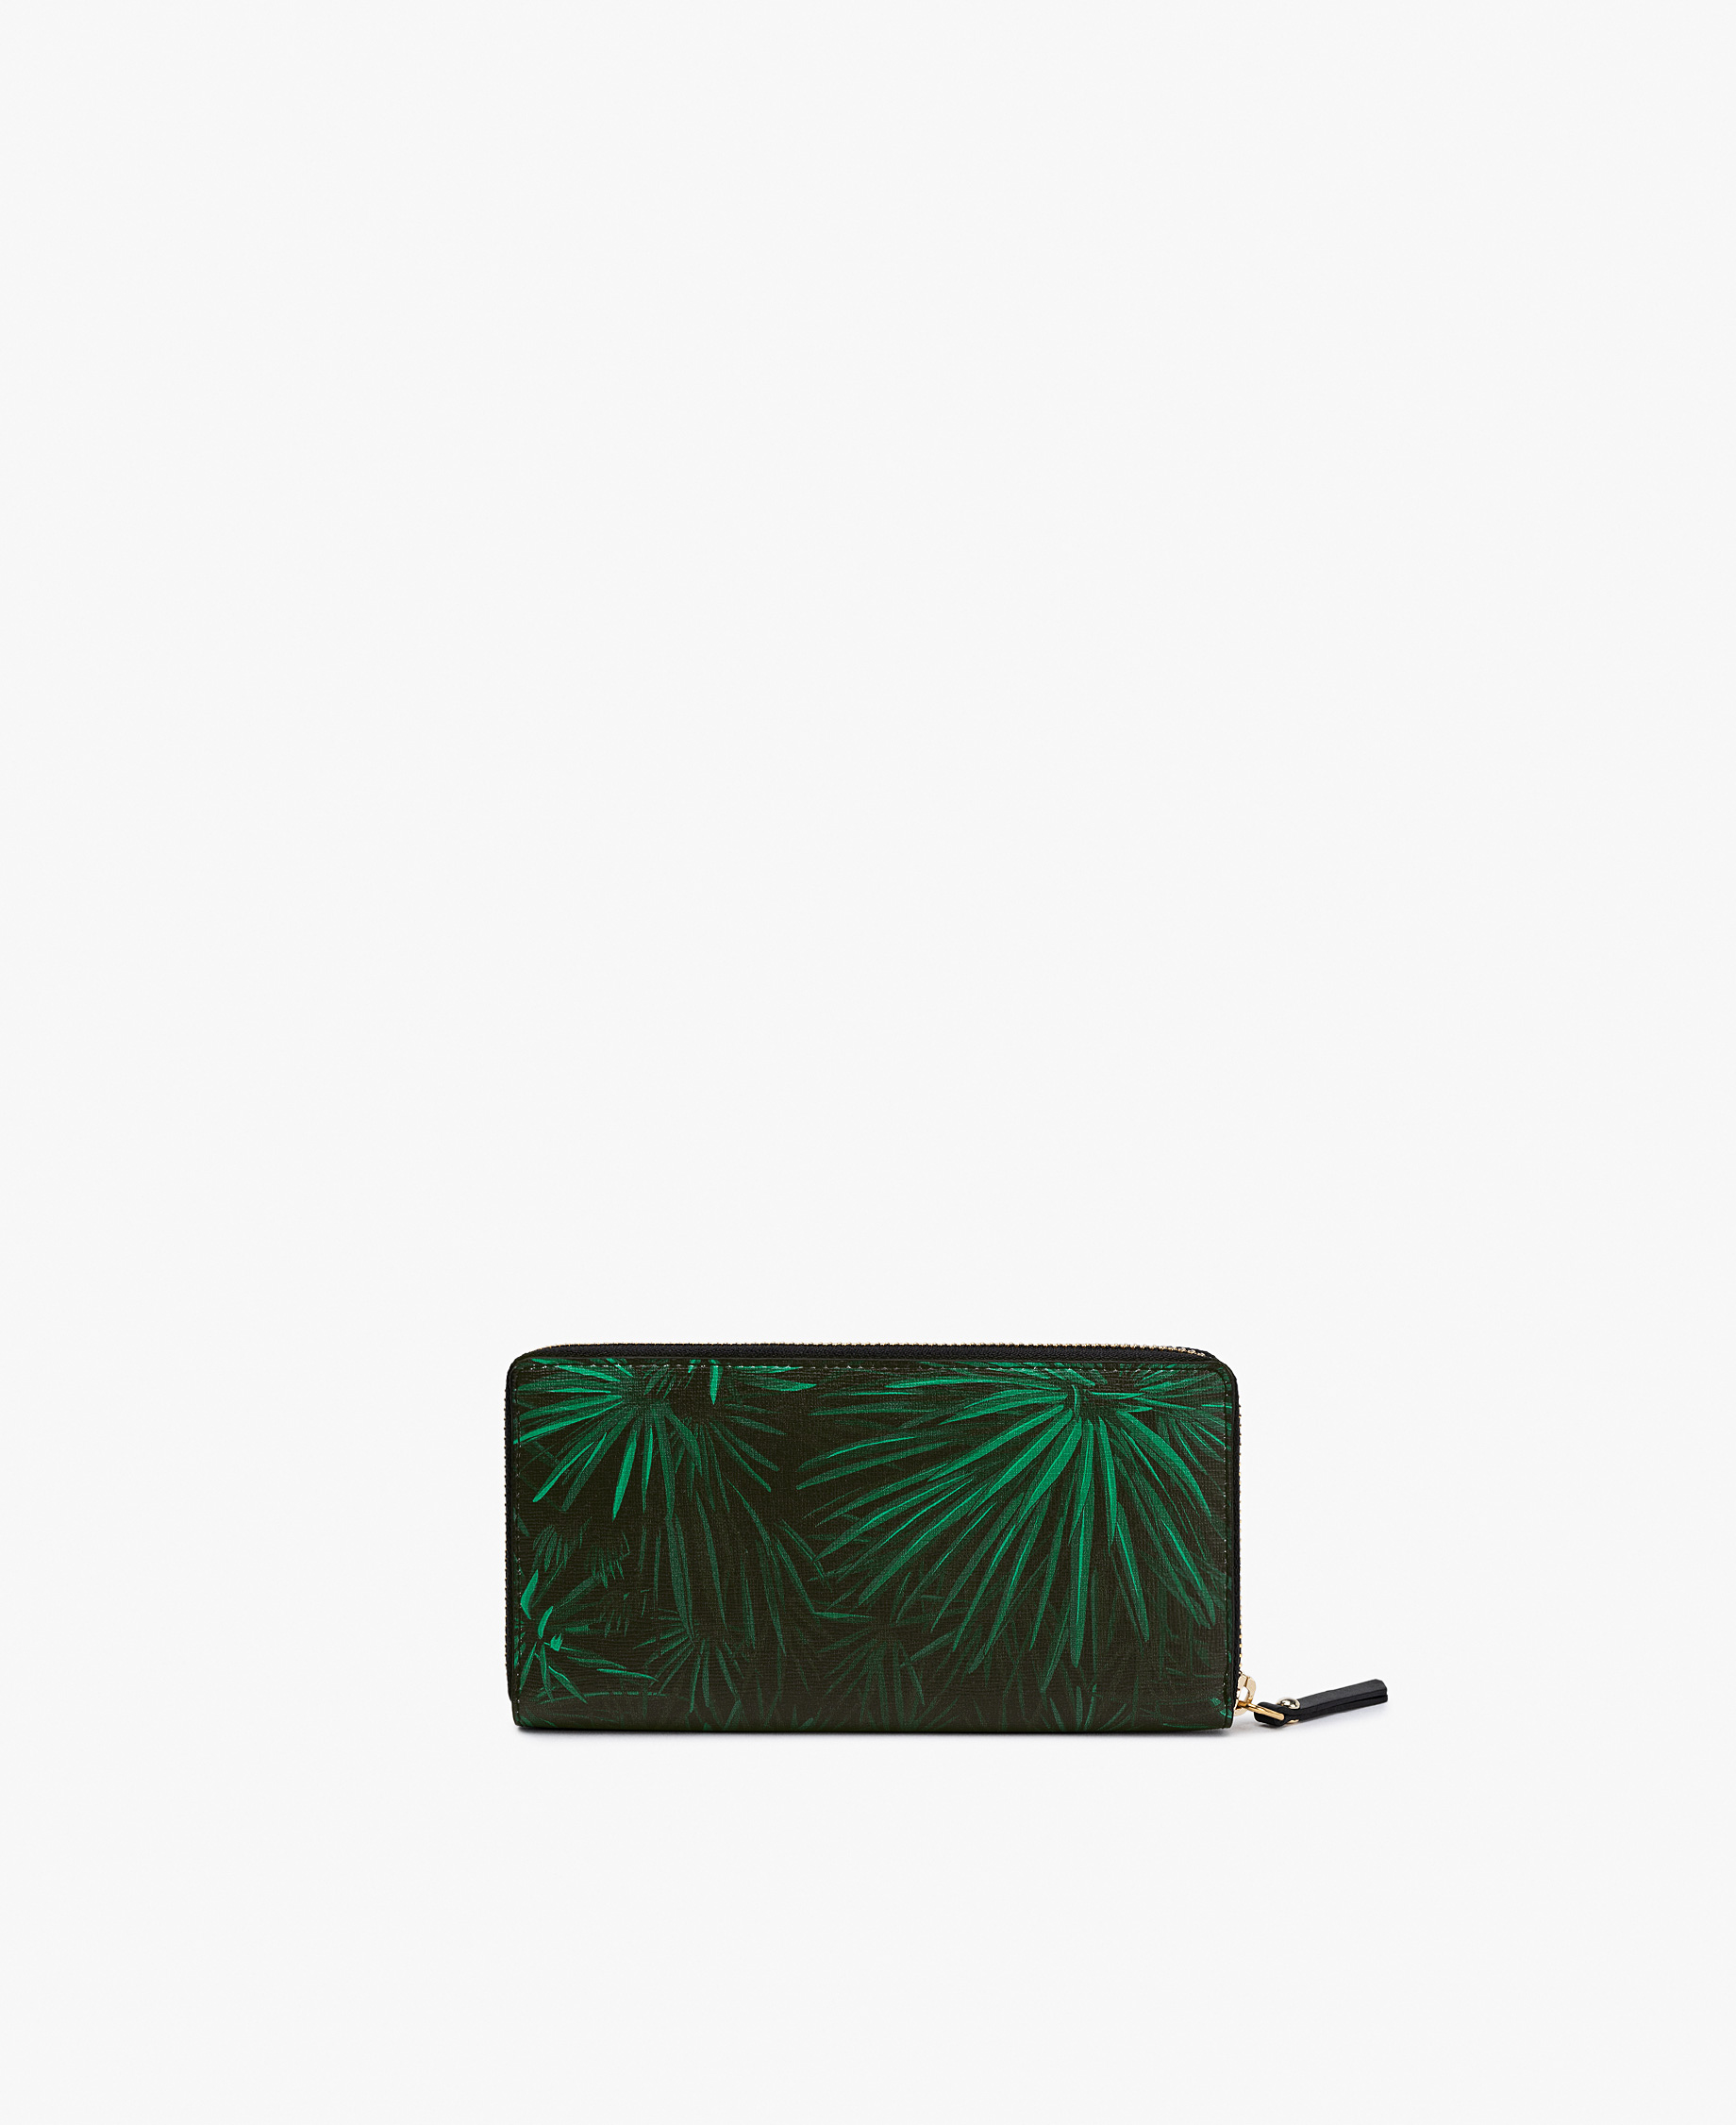 chic leather wallet